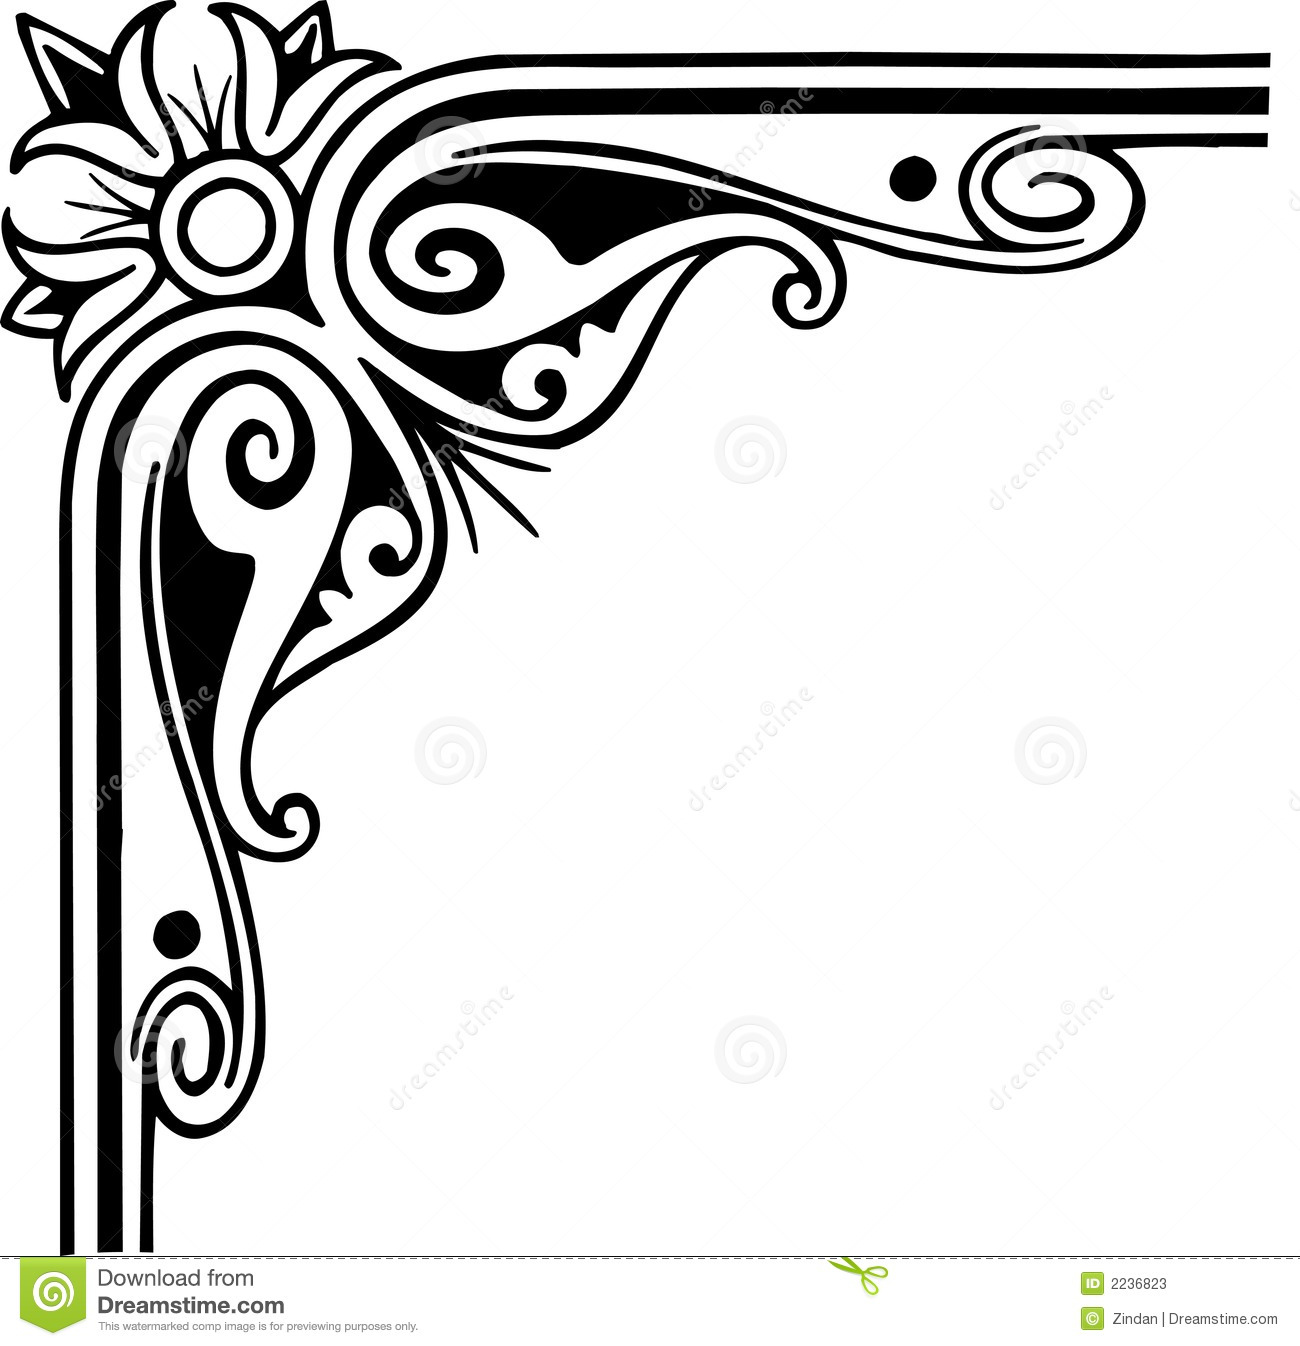 Wedding Card Borders Vector Free Download as well Blank Wedding Invitations in addition How To Make Wedding Invitation Cards likewise Filigree Frames Clip Art further  on green and black wedding invitations